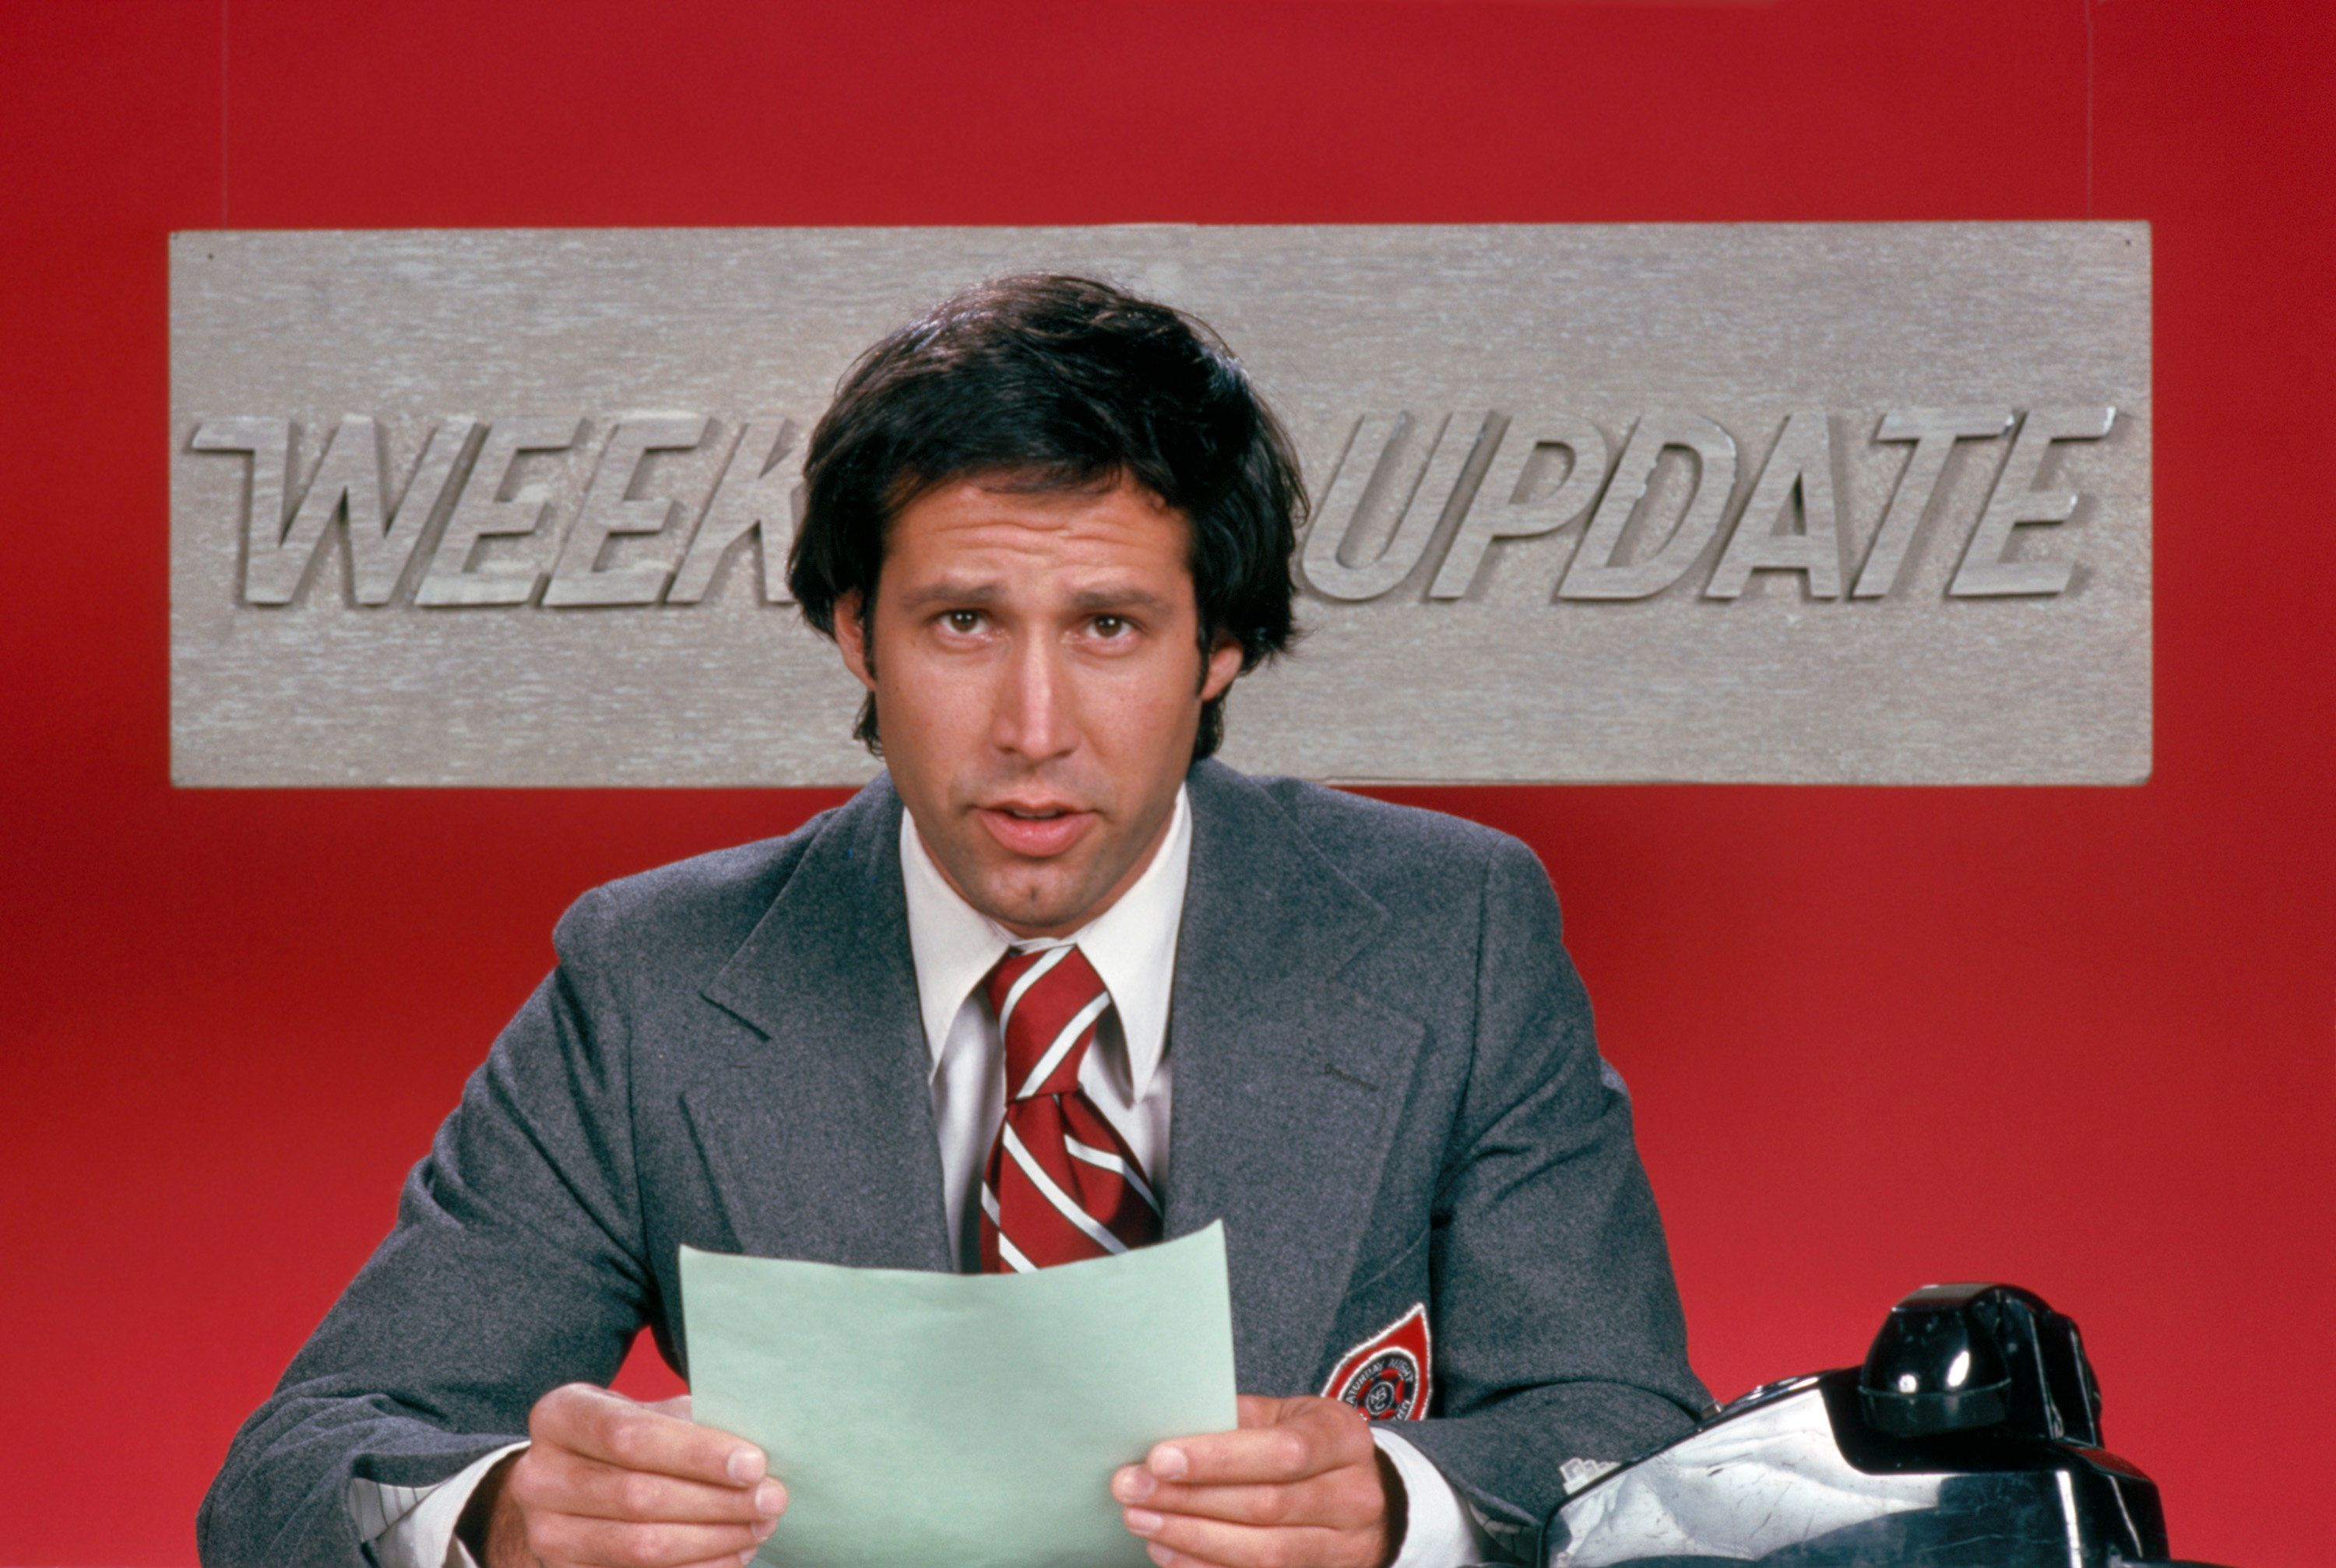 """Chevy Chase hosts the """"Weekend Update"""" segment on """"SNL"""" years ago. Chase expressed in a recent interview that he doesn't find the show funny anymore."""